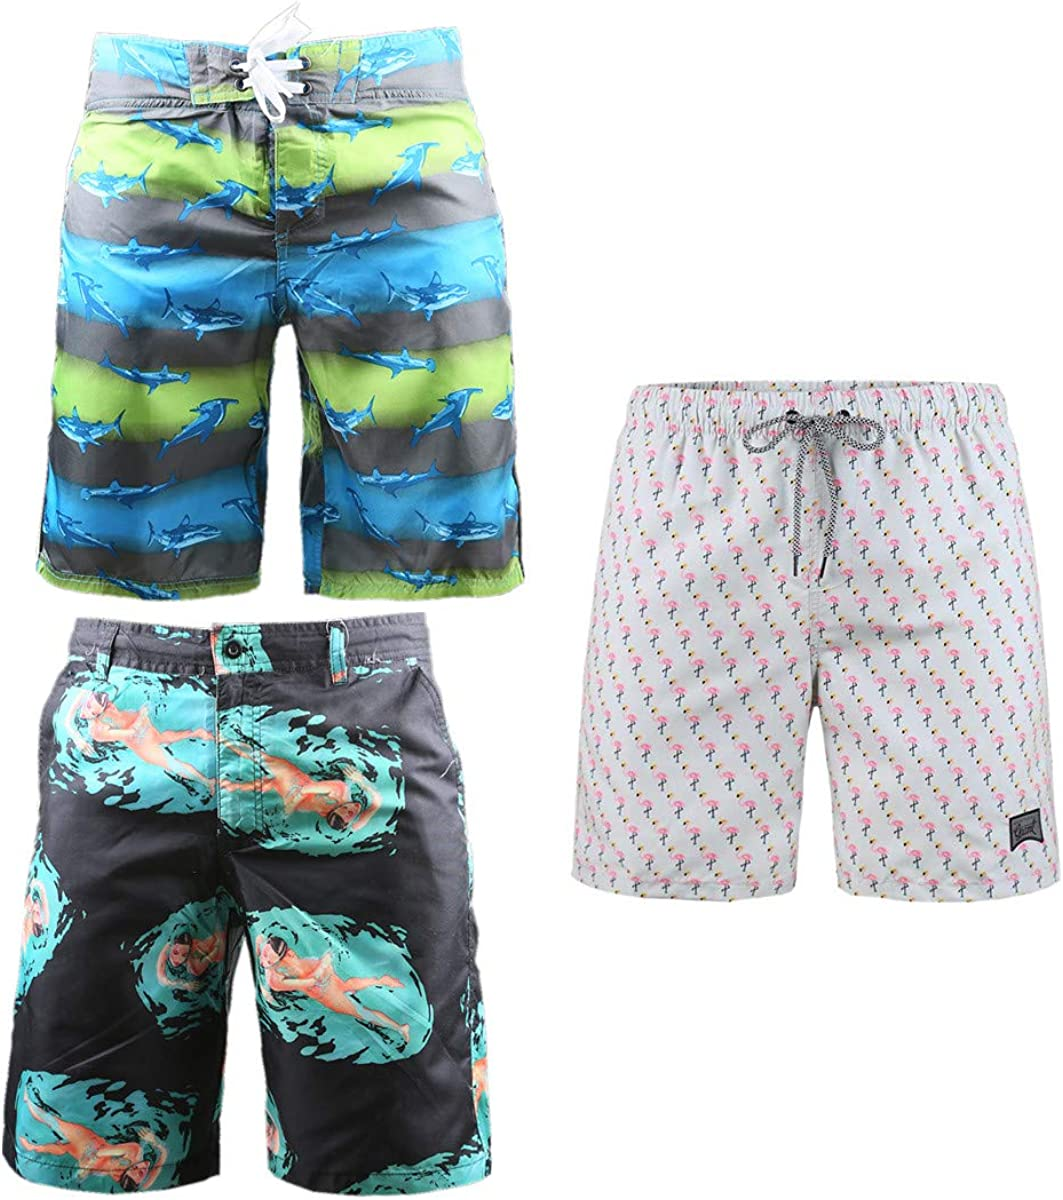 Beautiful Giant 3-Pack Men's Board Shorts with Pockets Casual Beach Surfing Loose Waterproof Swim Shorts